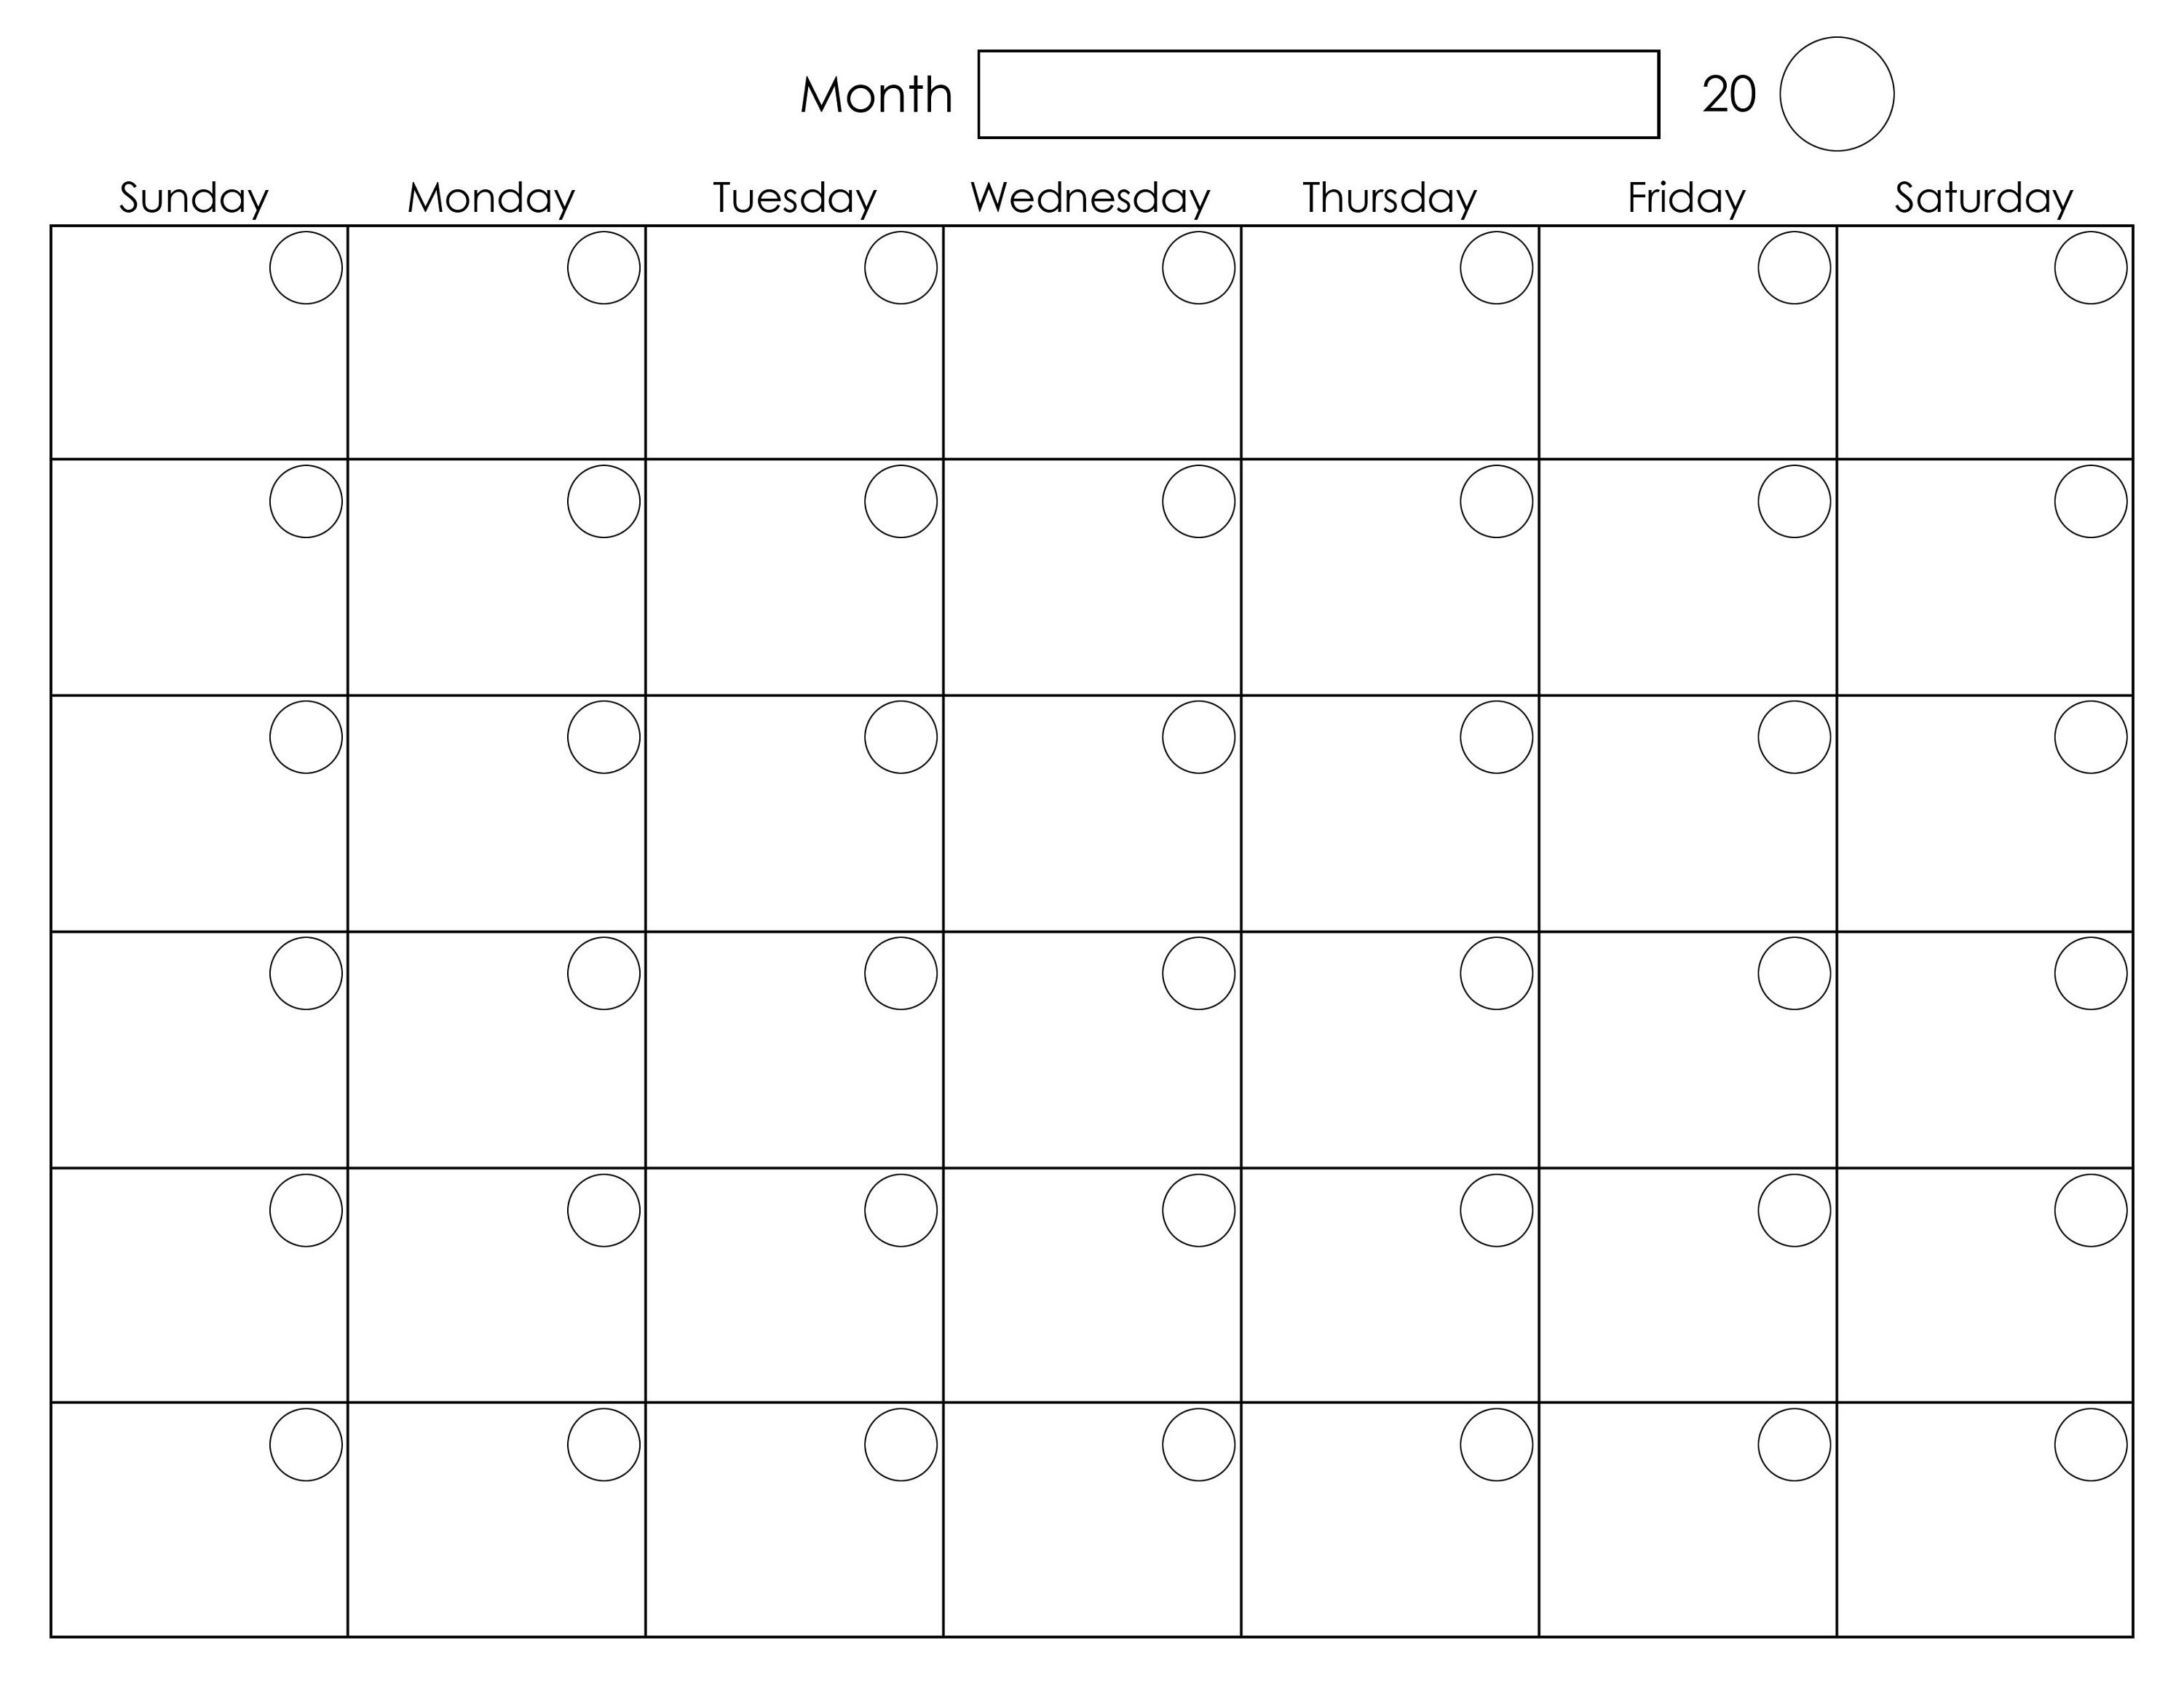 Printable Blank Monthly Calendar | Planners | Календарь, Планеры И within Blank Monthly Calendars To Print